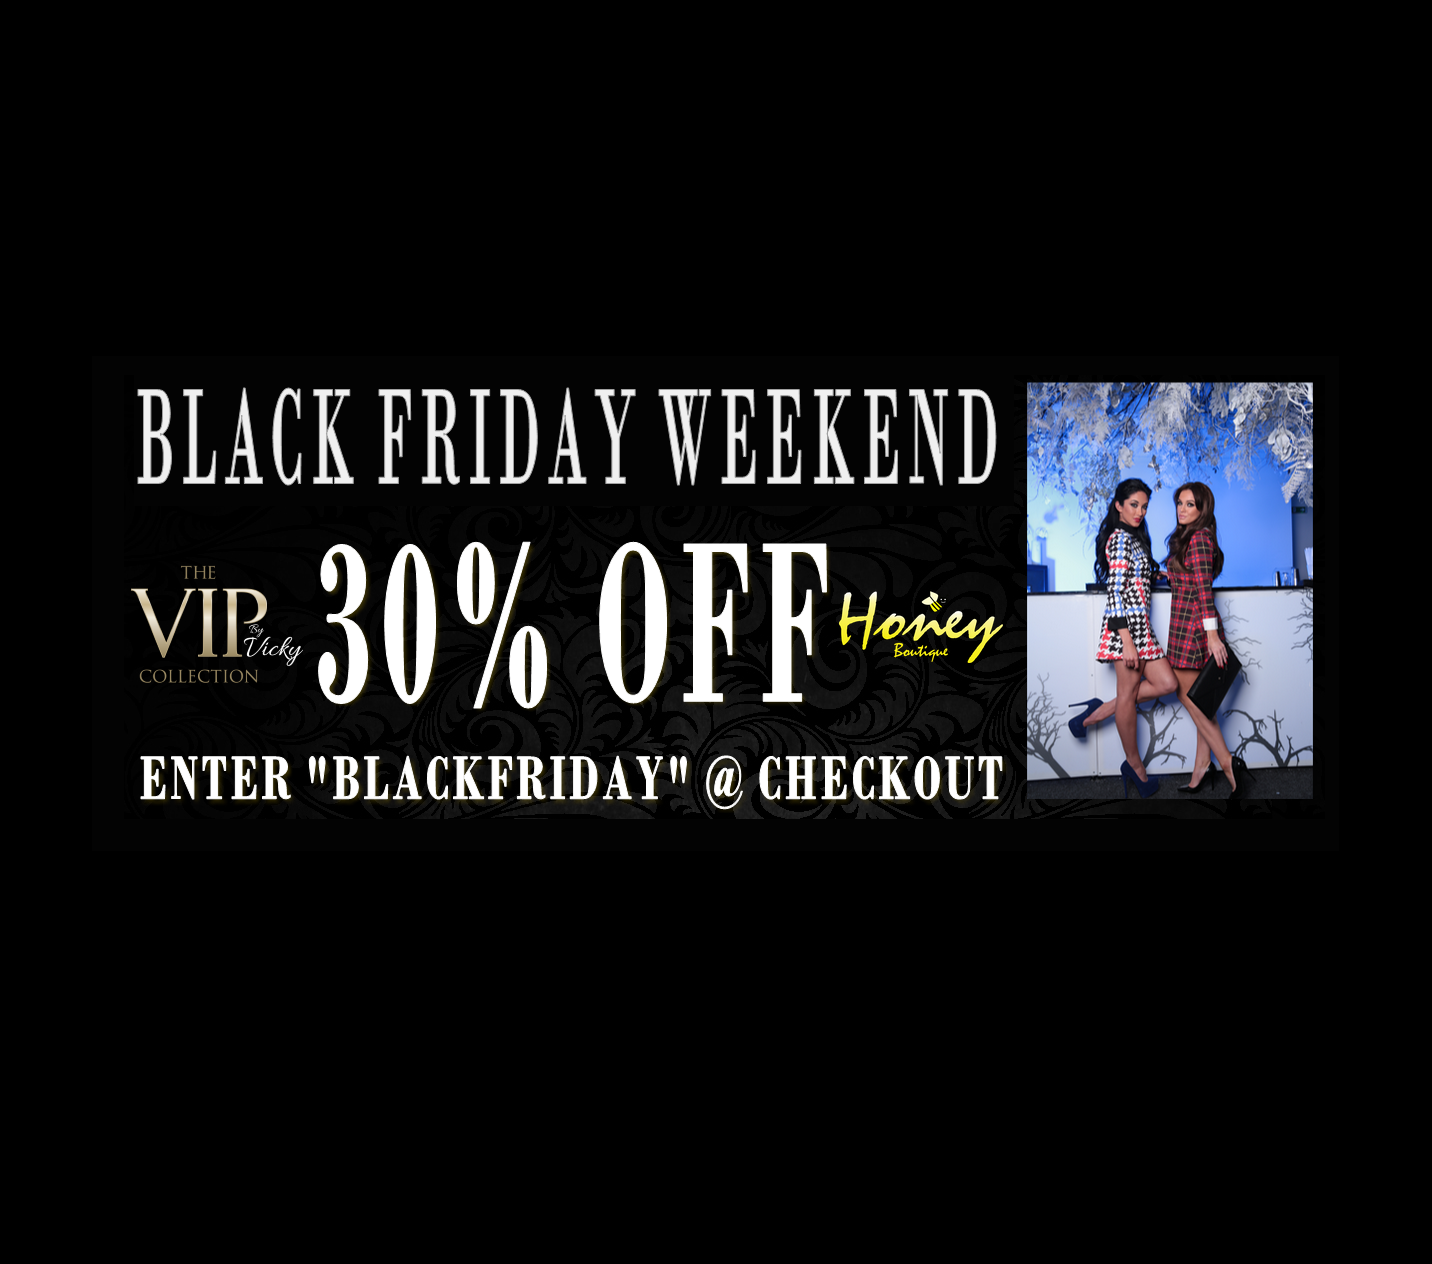 RT @HoneyBoutique_1: #BlackFridayWeekend Shop@ http://t.co/cxGqT9tX5v.. 30% OFF our entire website INC The #VIPcollection by @VickyGShore h…